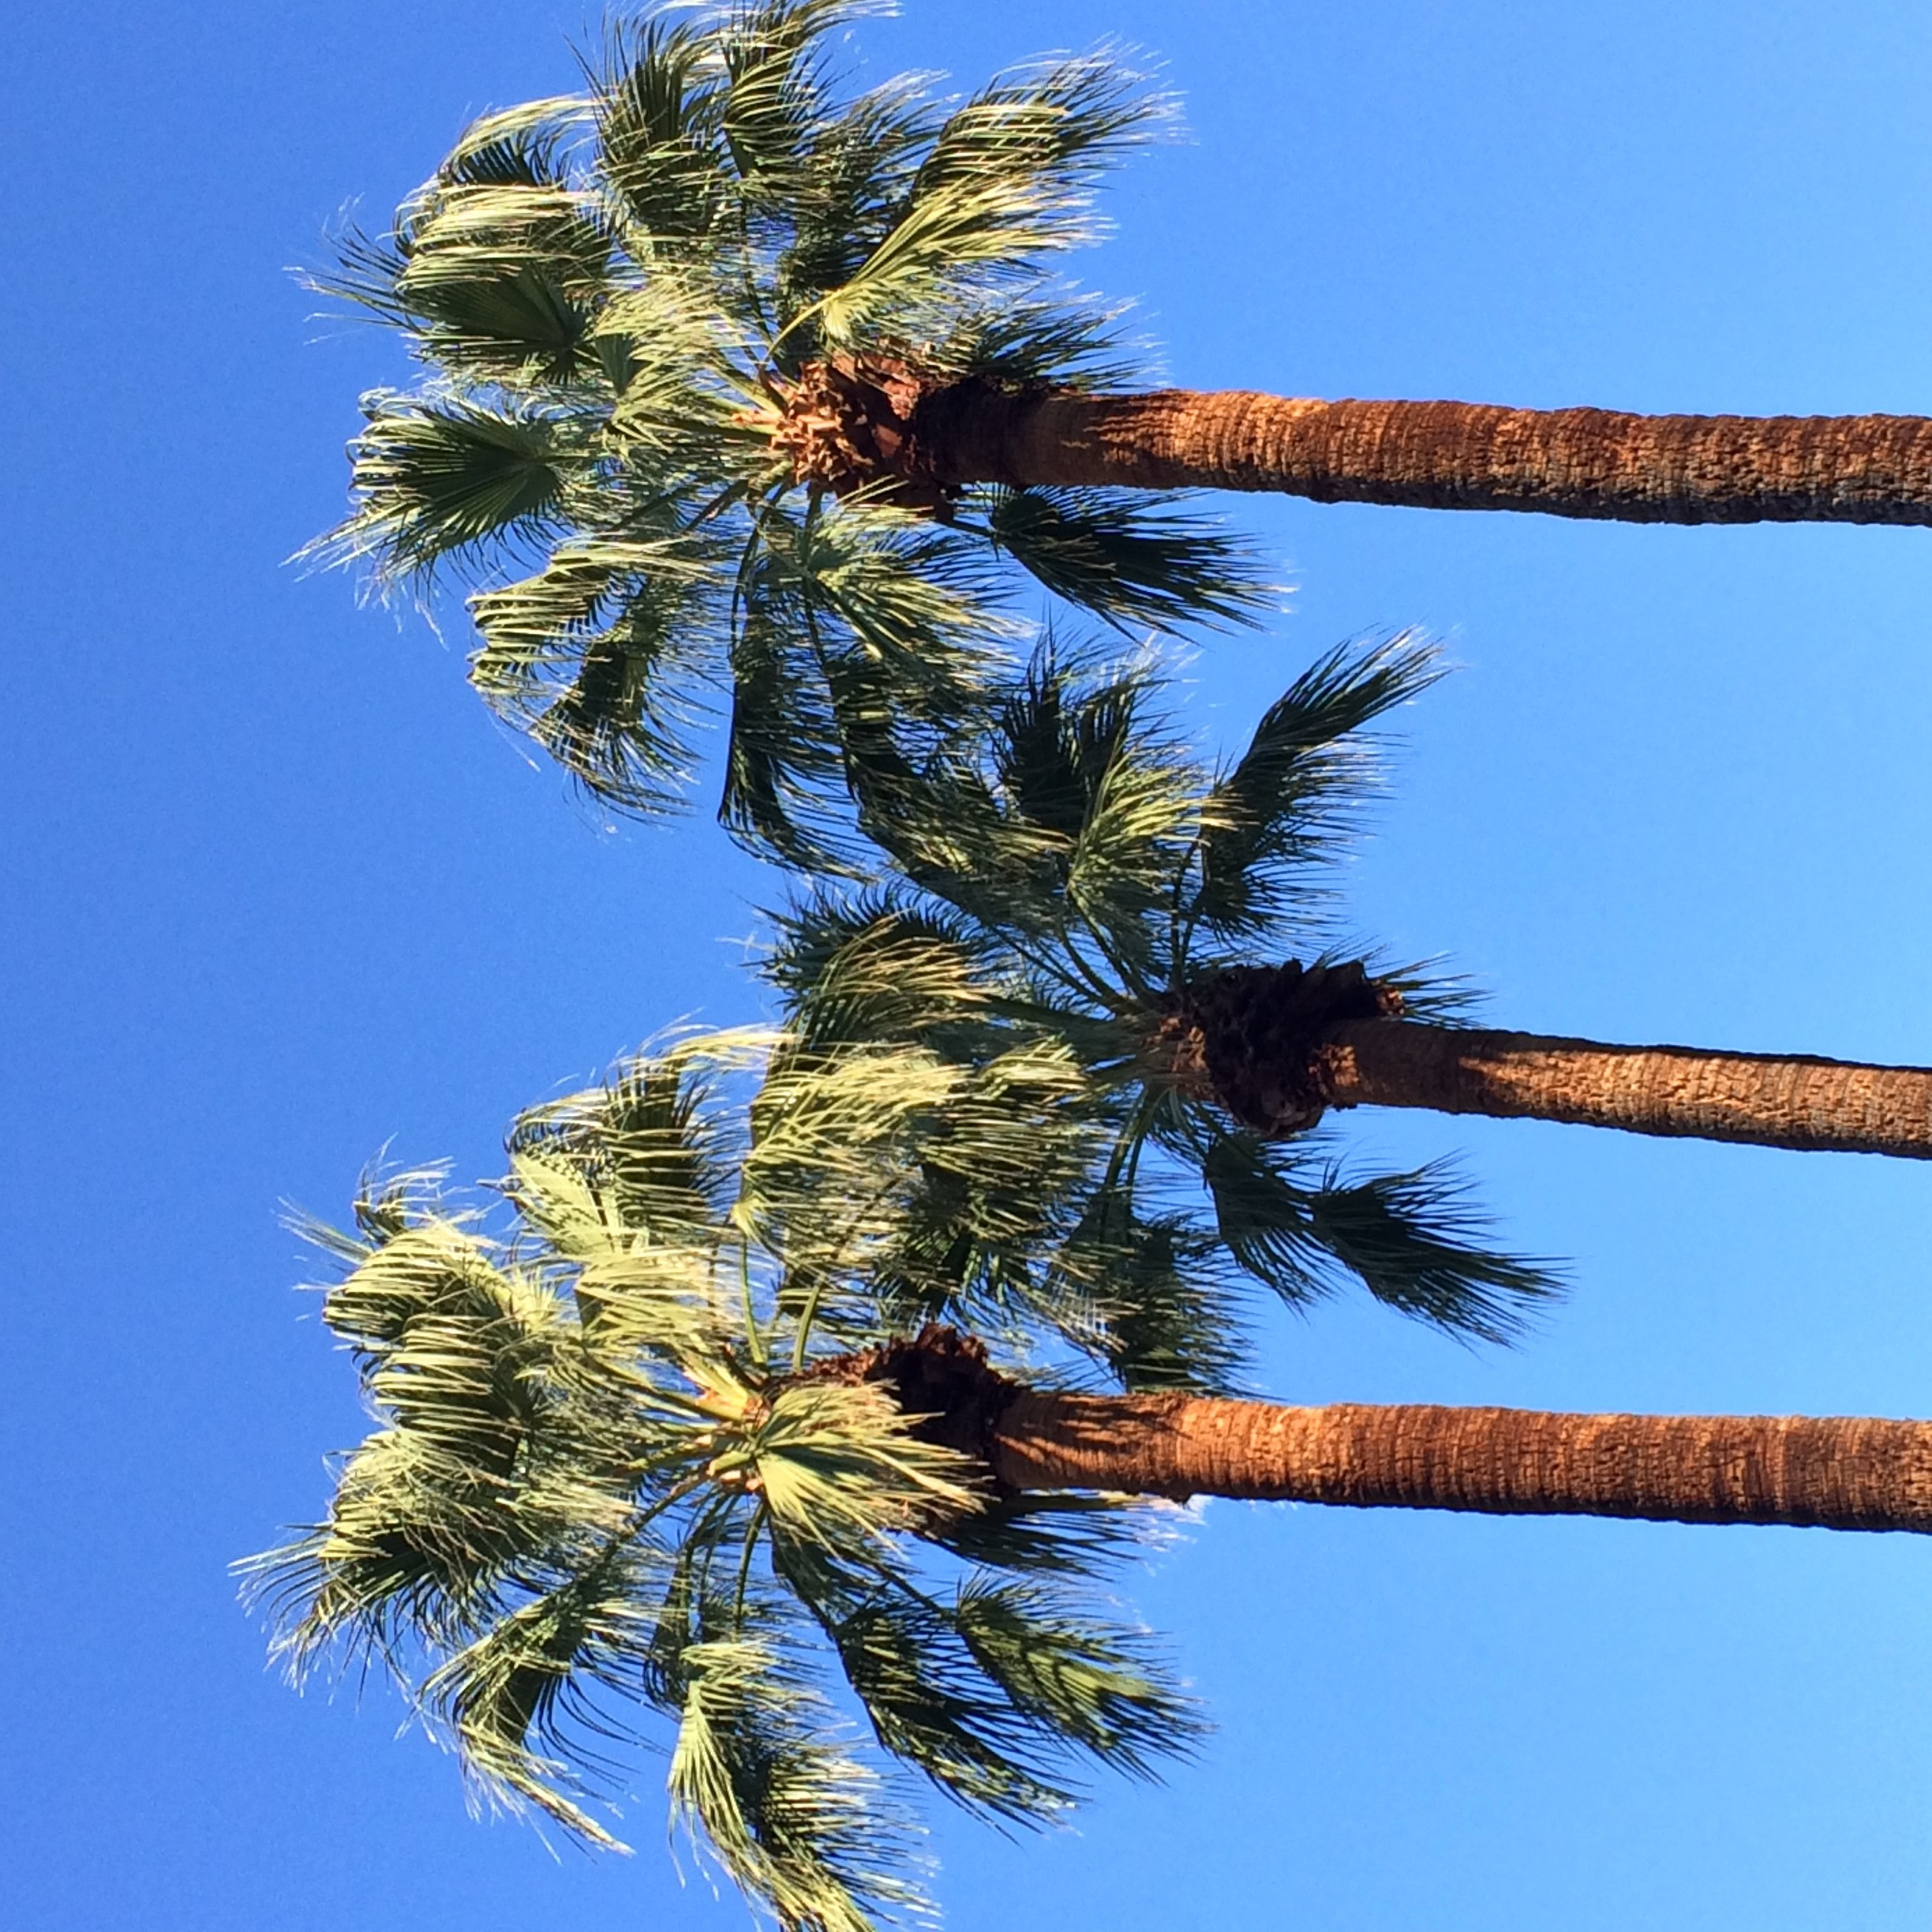 Travel guide palm springs california for Travel to palm springs